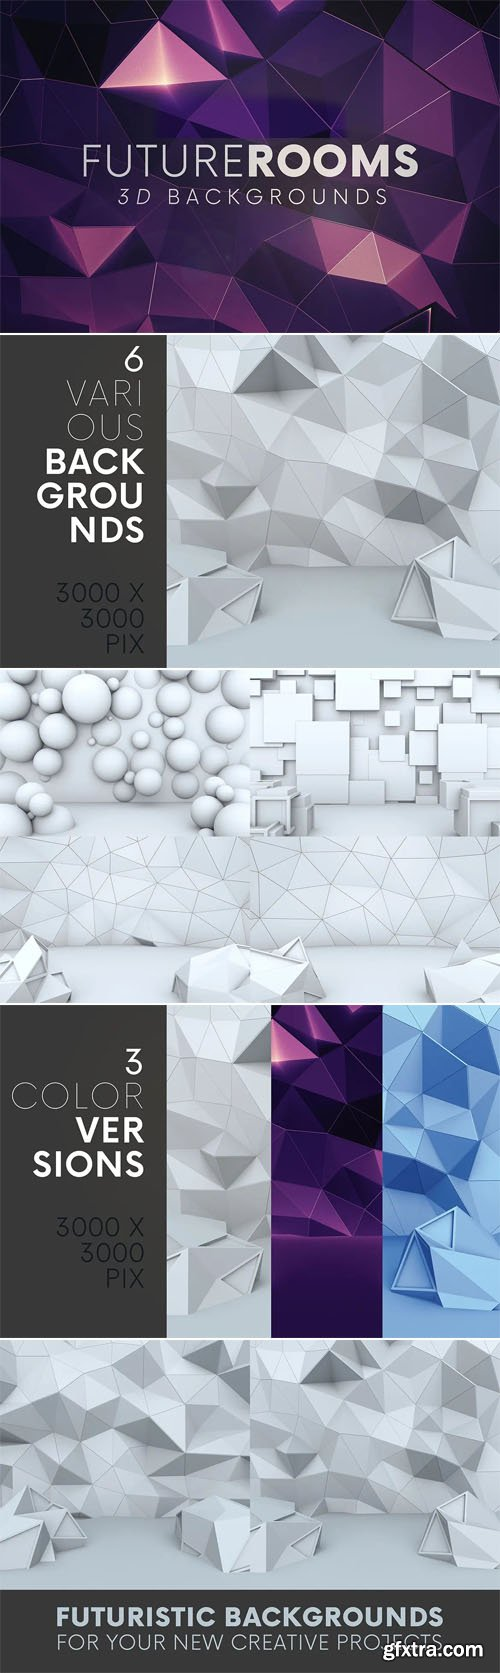 Futuristic Rooms 3D Backgrounds